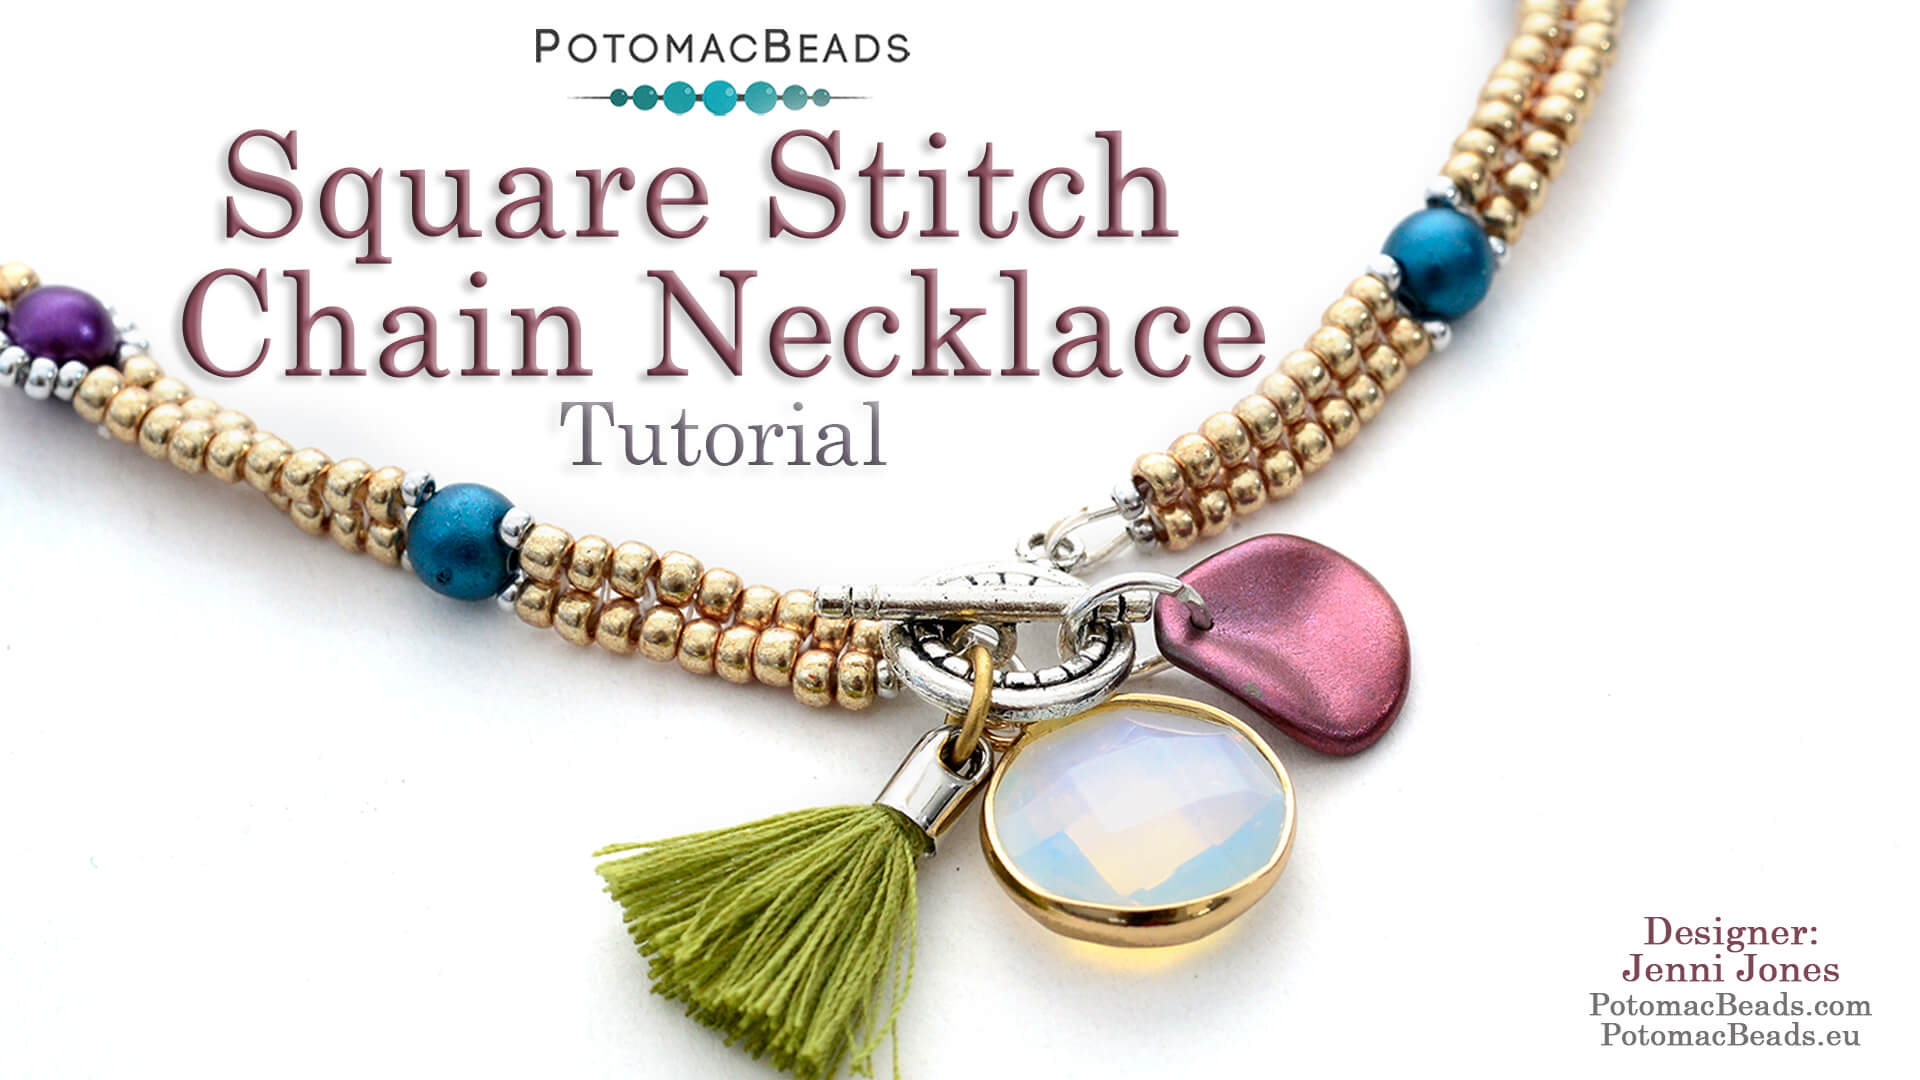 How to Bead / Videos Sorted by Beads / RounTrio® & RounTrio® Faceted Bead Videos / Square Stitch Chain Necklace Tutorial